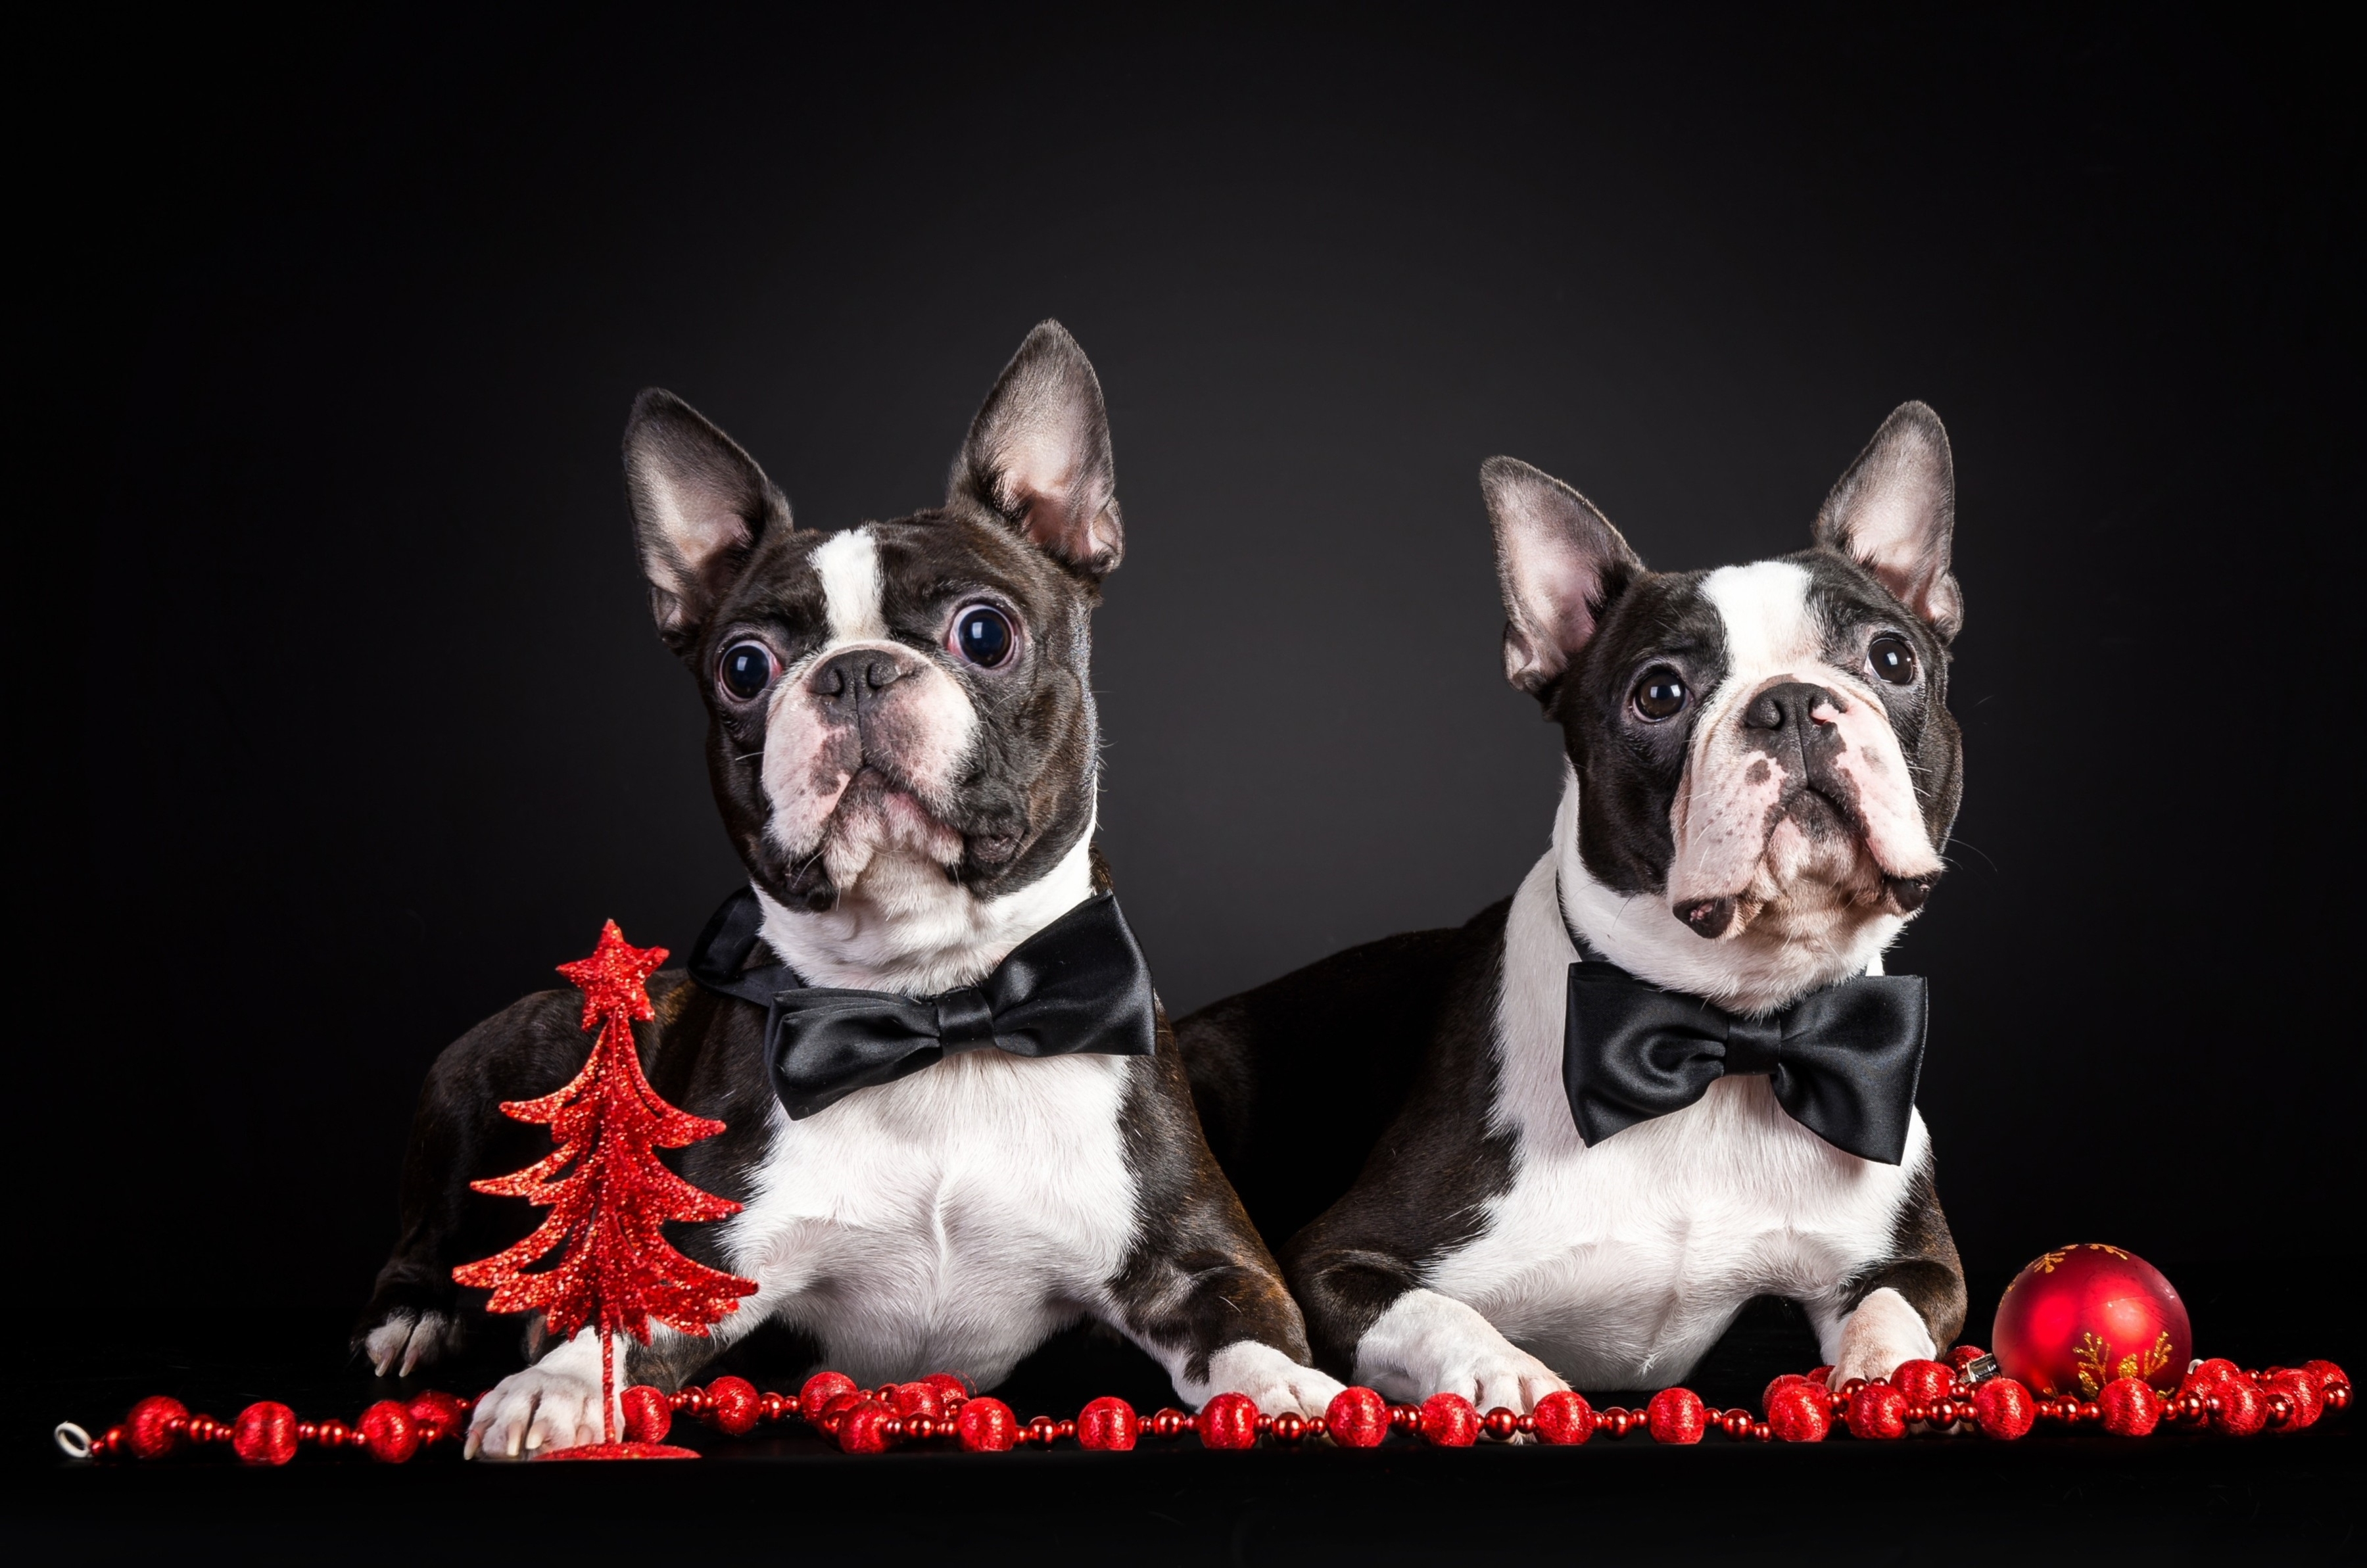 58545 download wallpaper Animals, Dogs, Couple, Pair, Puppies, Outfit, Attire, French Bulldog screensavers and pictures for free